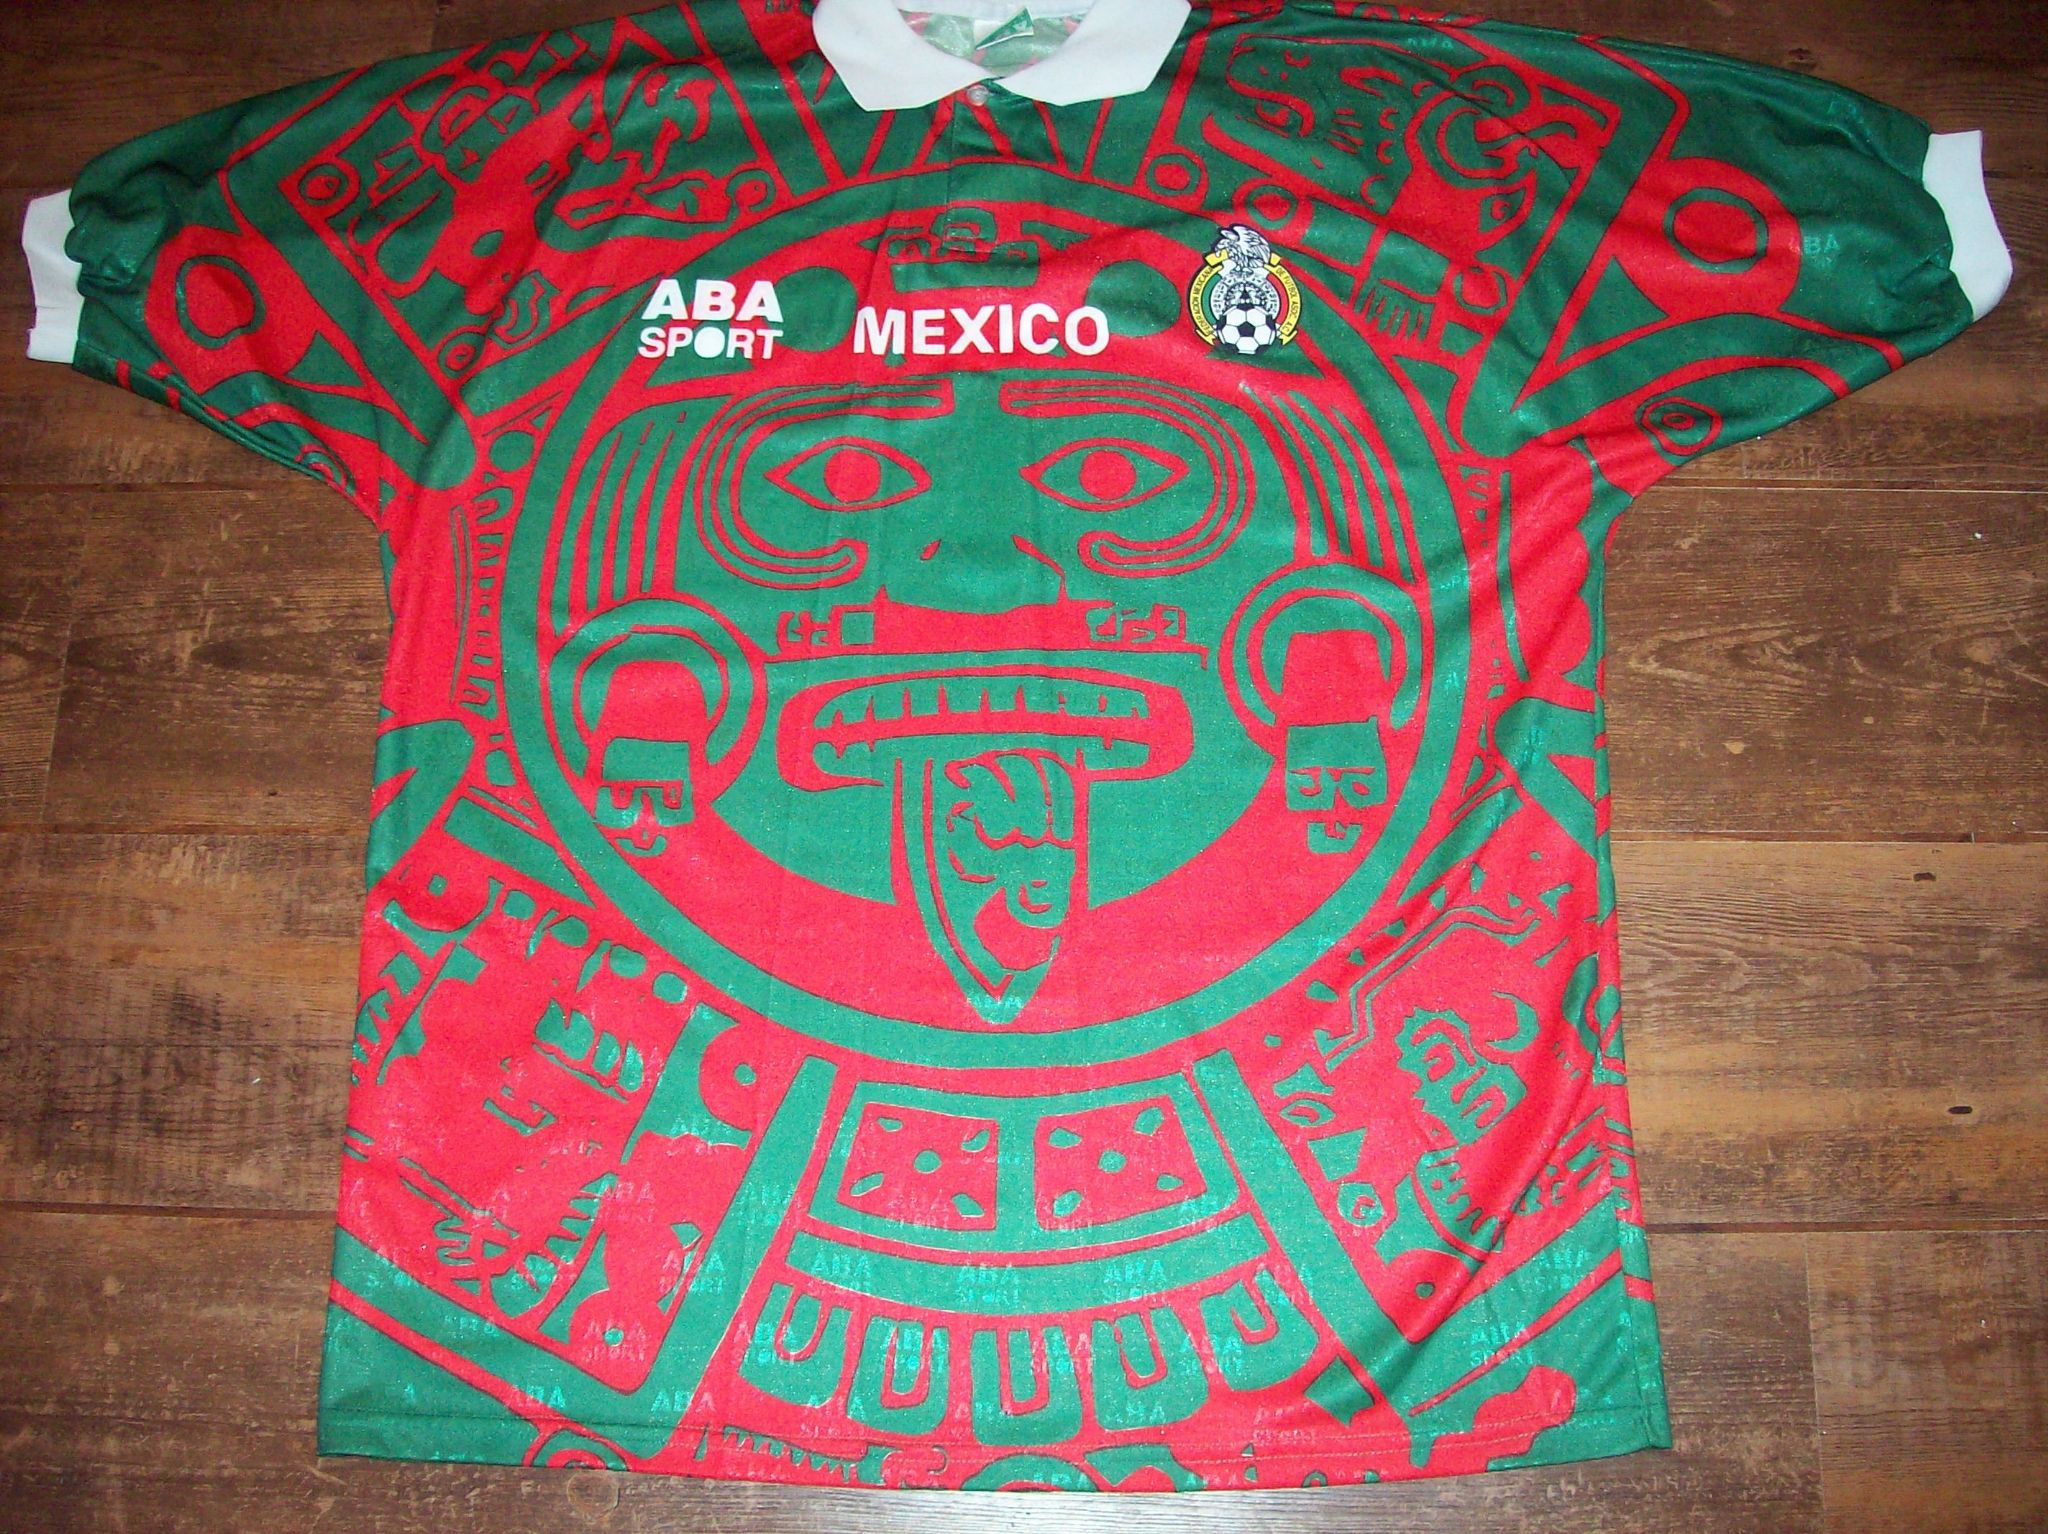 0d390fd4e Global Classic Football Shirts | 1997 Mexico Vintage Retro Old ...